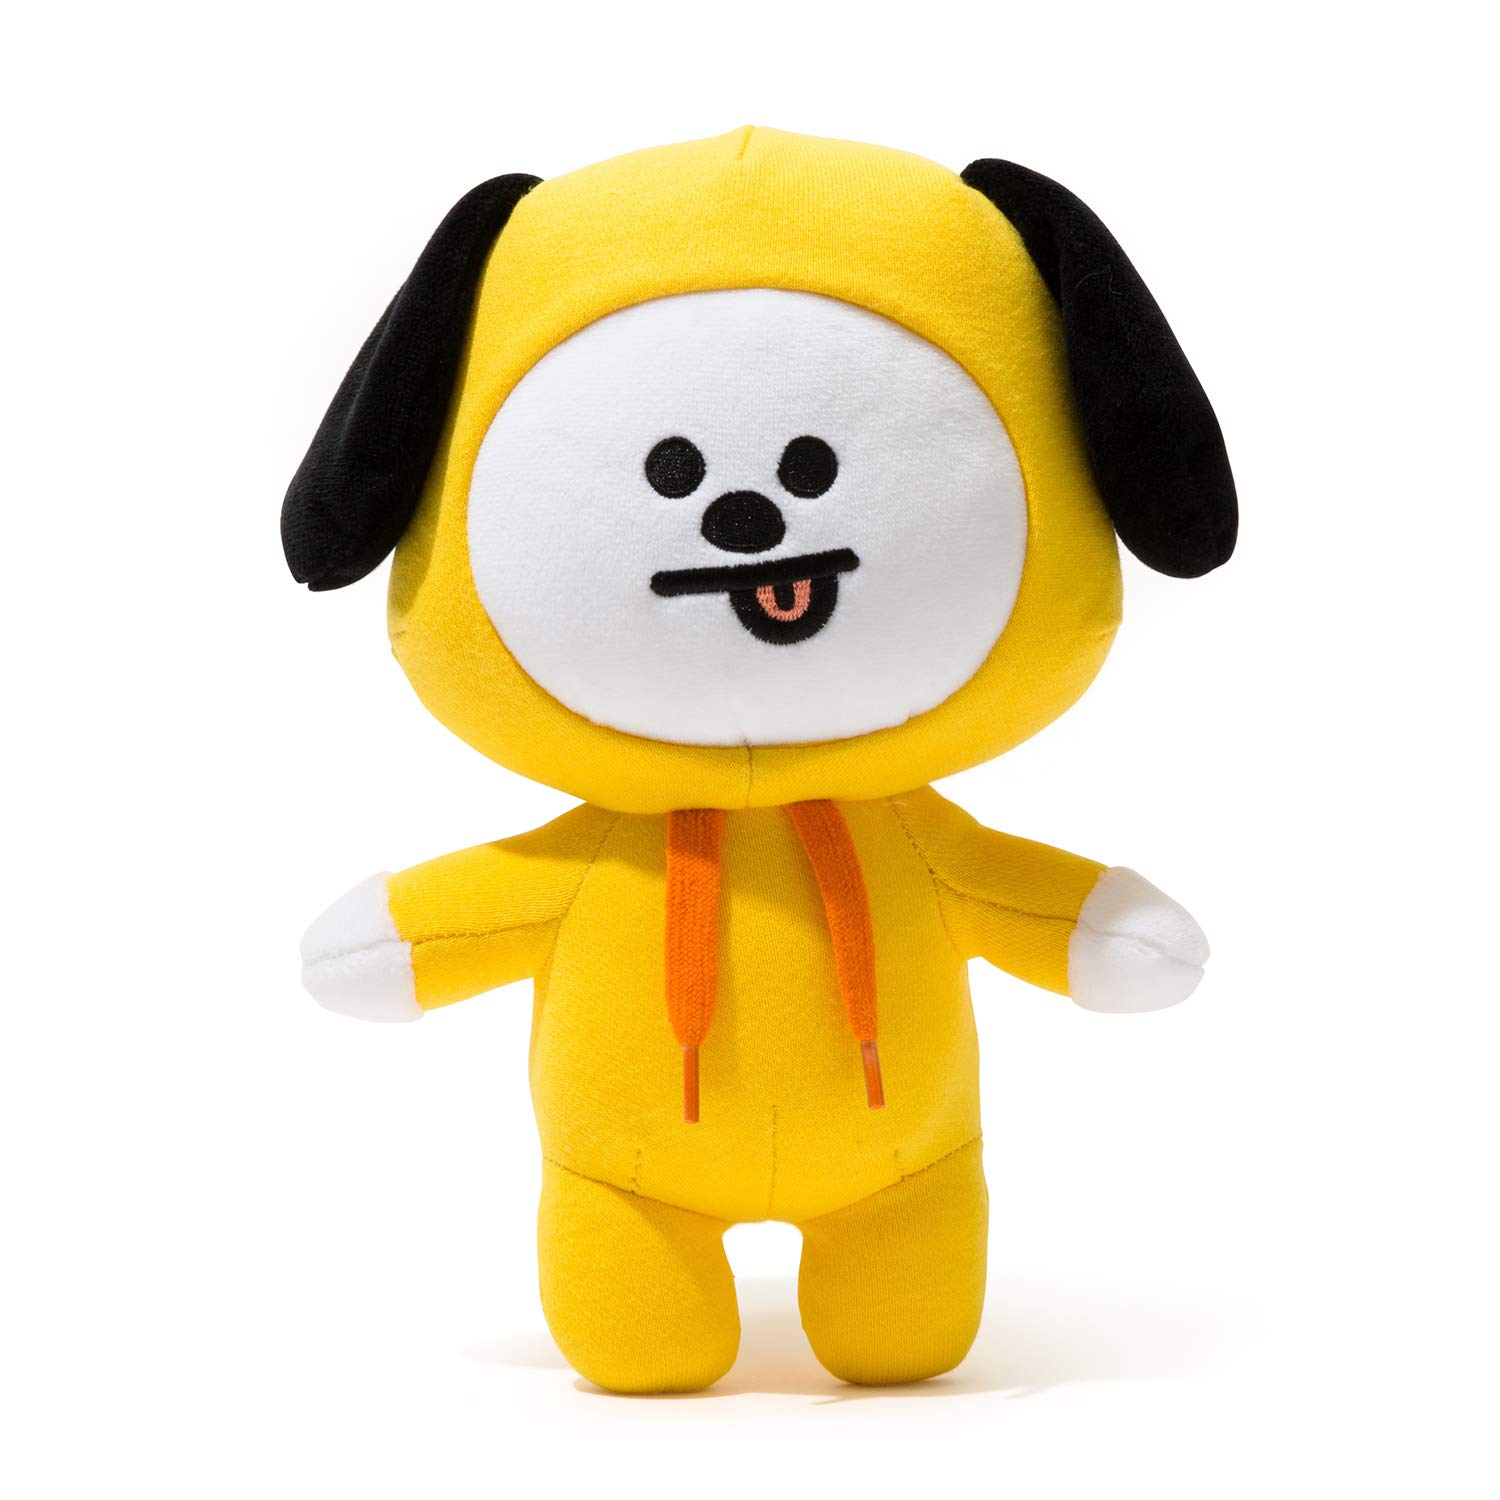 BT21 Chimmy Standing Plush Doll Medium Yellow Line Friends